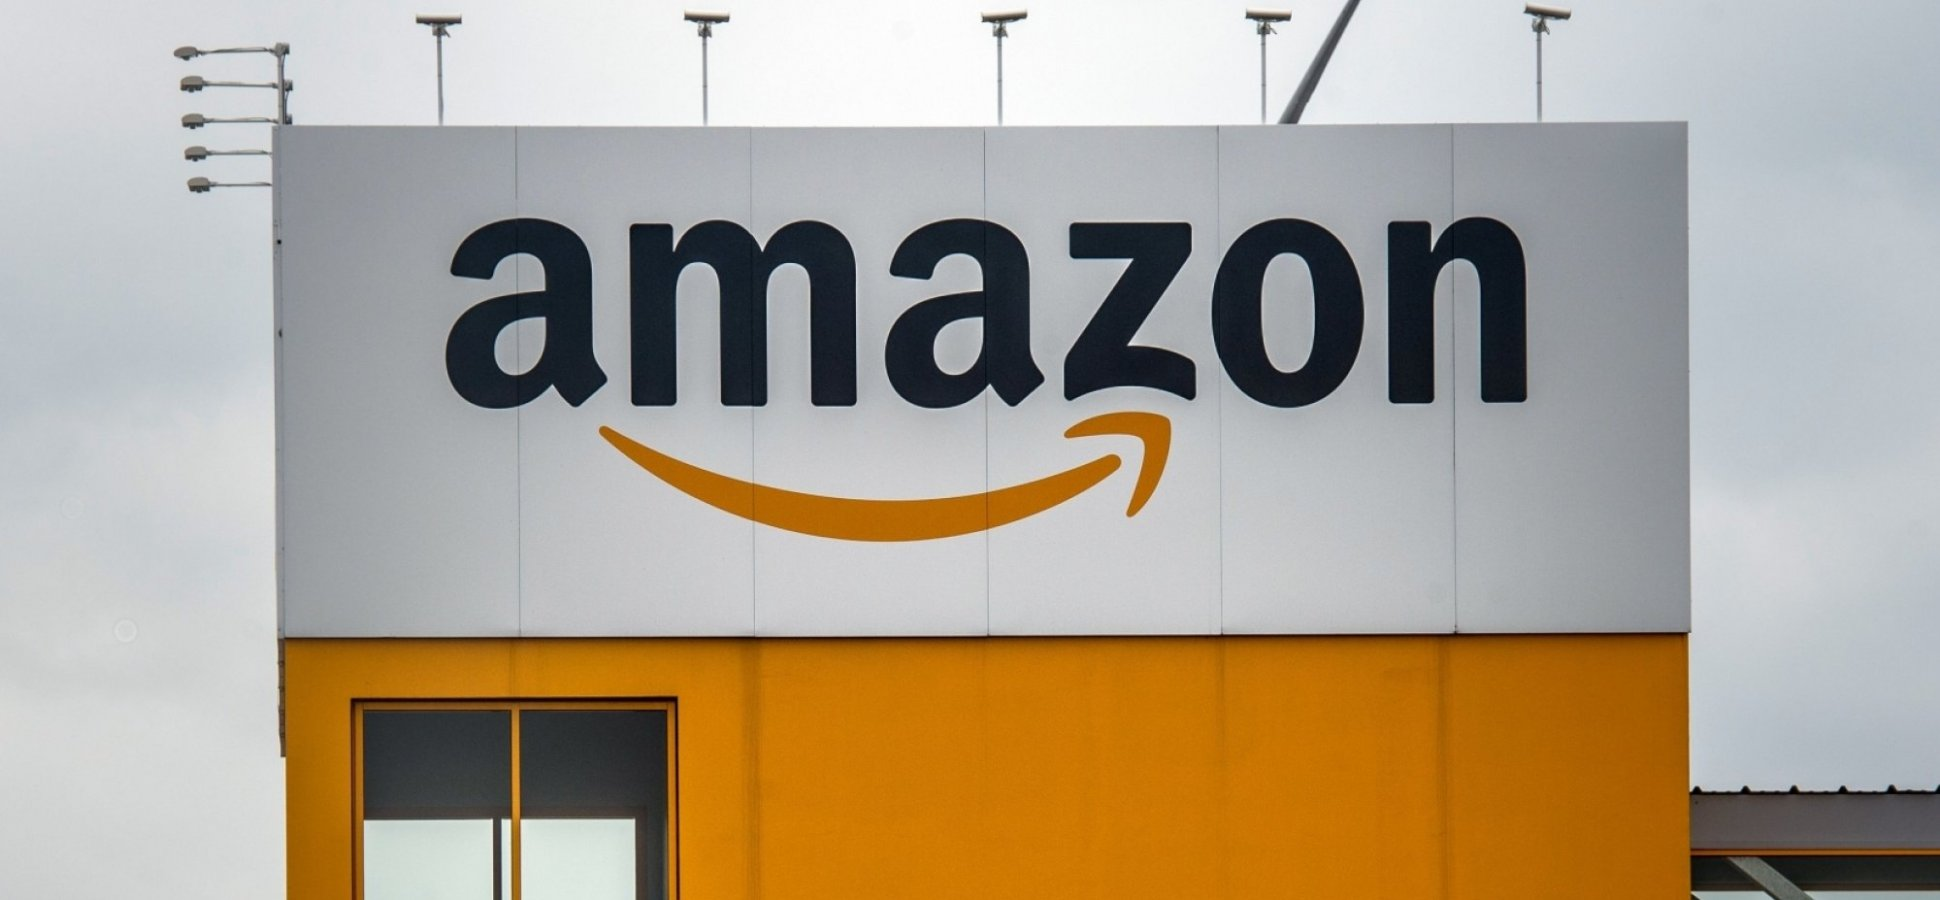 Amazon Is Paying Its Employees  12 000 to Train for a Job at Another     Amazon Is Paying Its Employees  12 000 to Train for a Job at Another  Company  And It s Brilliant   Inc com